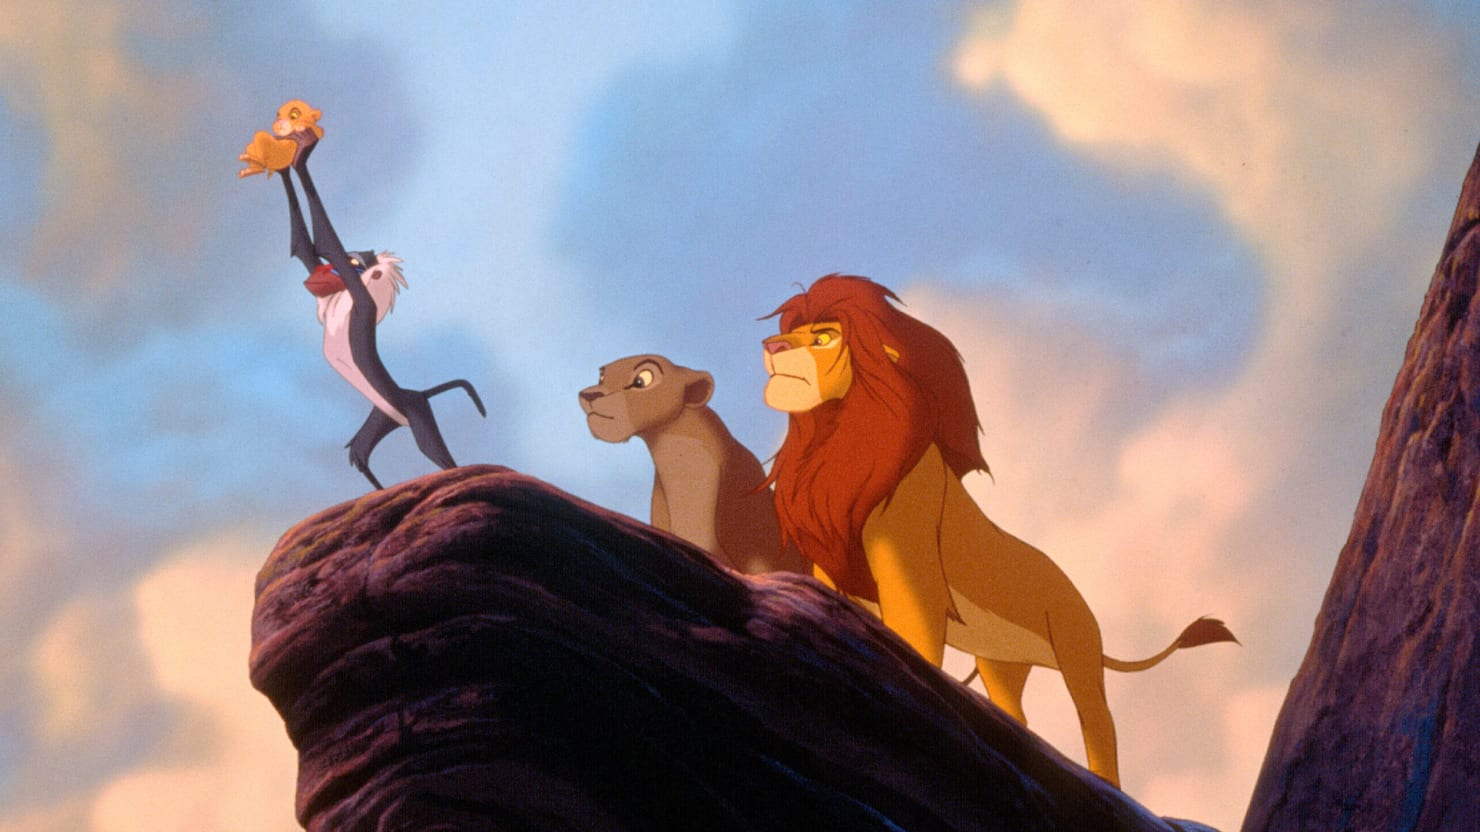 LION KING Promotional Still